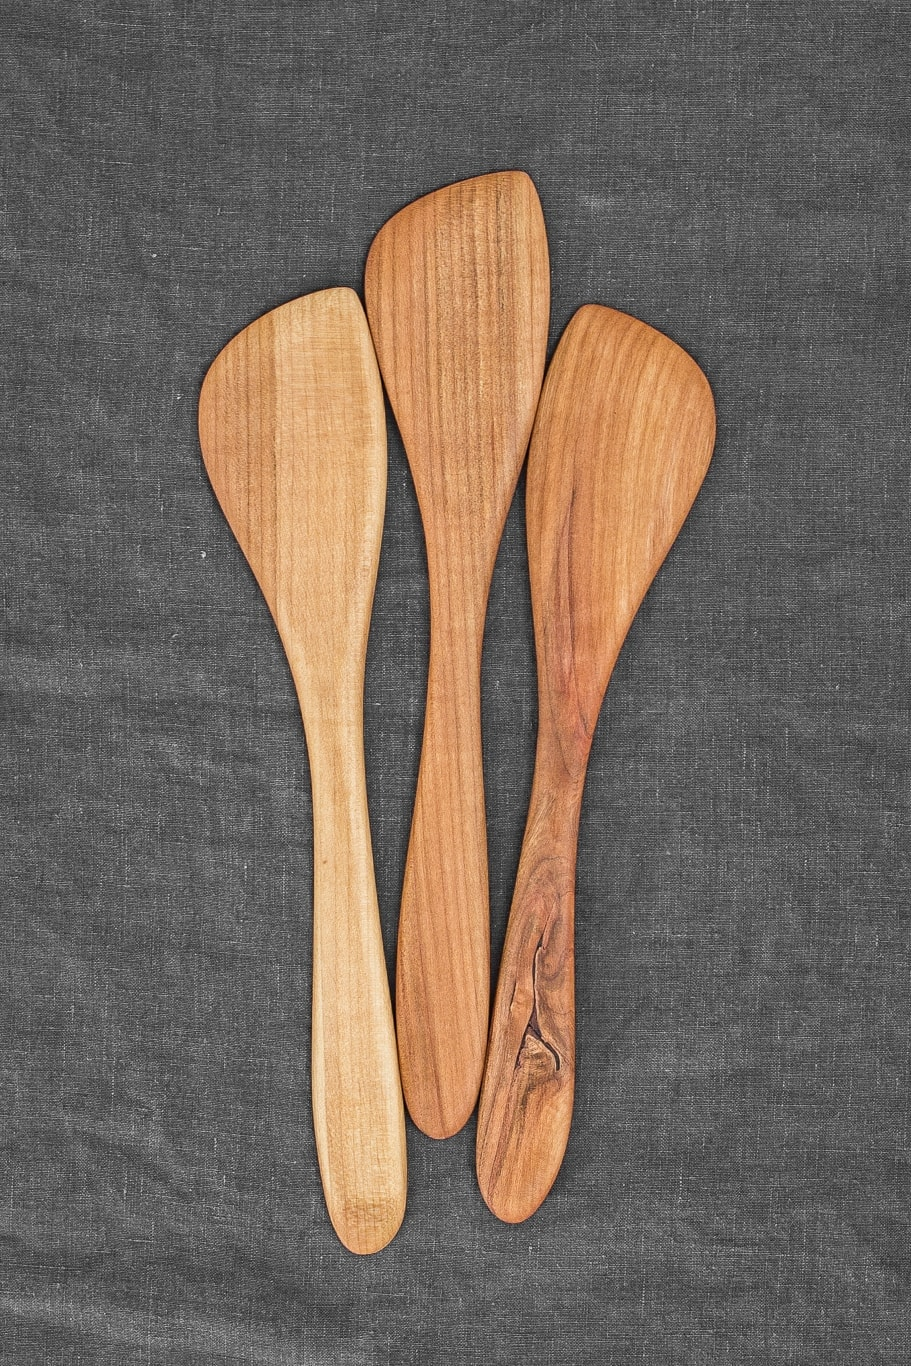 Hand-Carved Stirring Paddle (Cherry Wood)